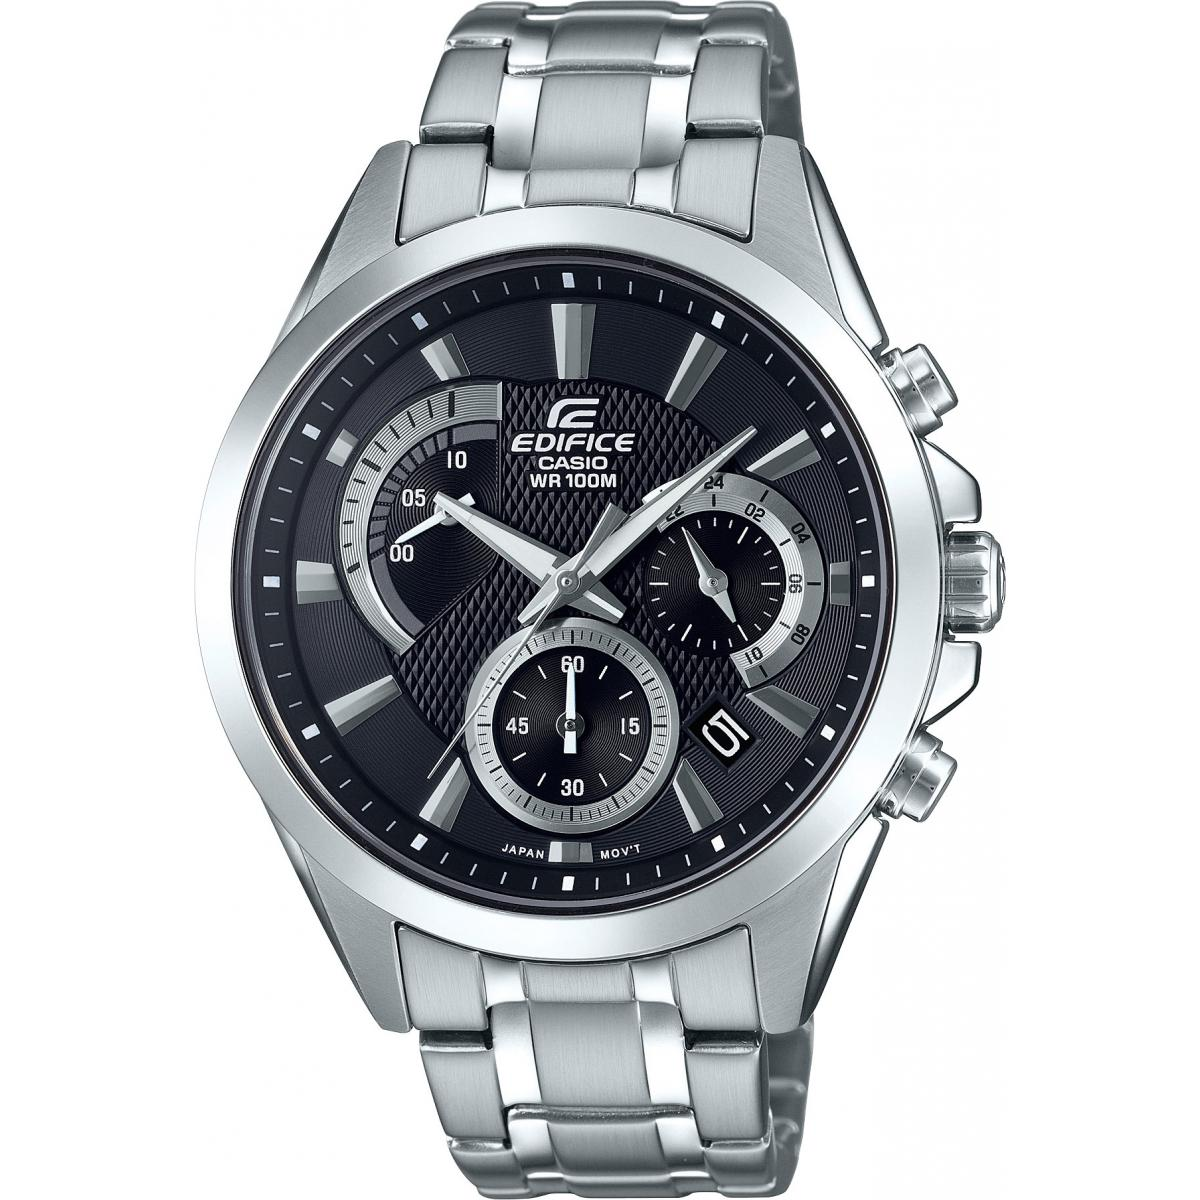 Montre Casio EDIFICE EFV-580D-1AVUEF - Montre EDIFICE Acier Homme